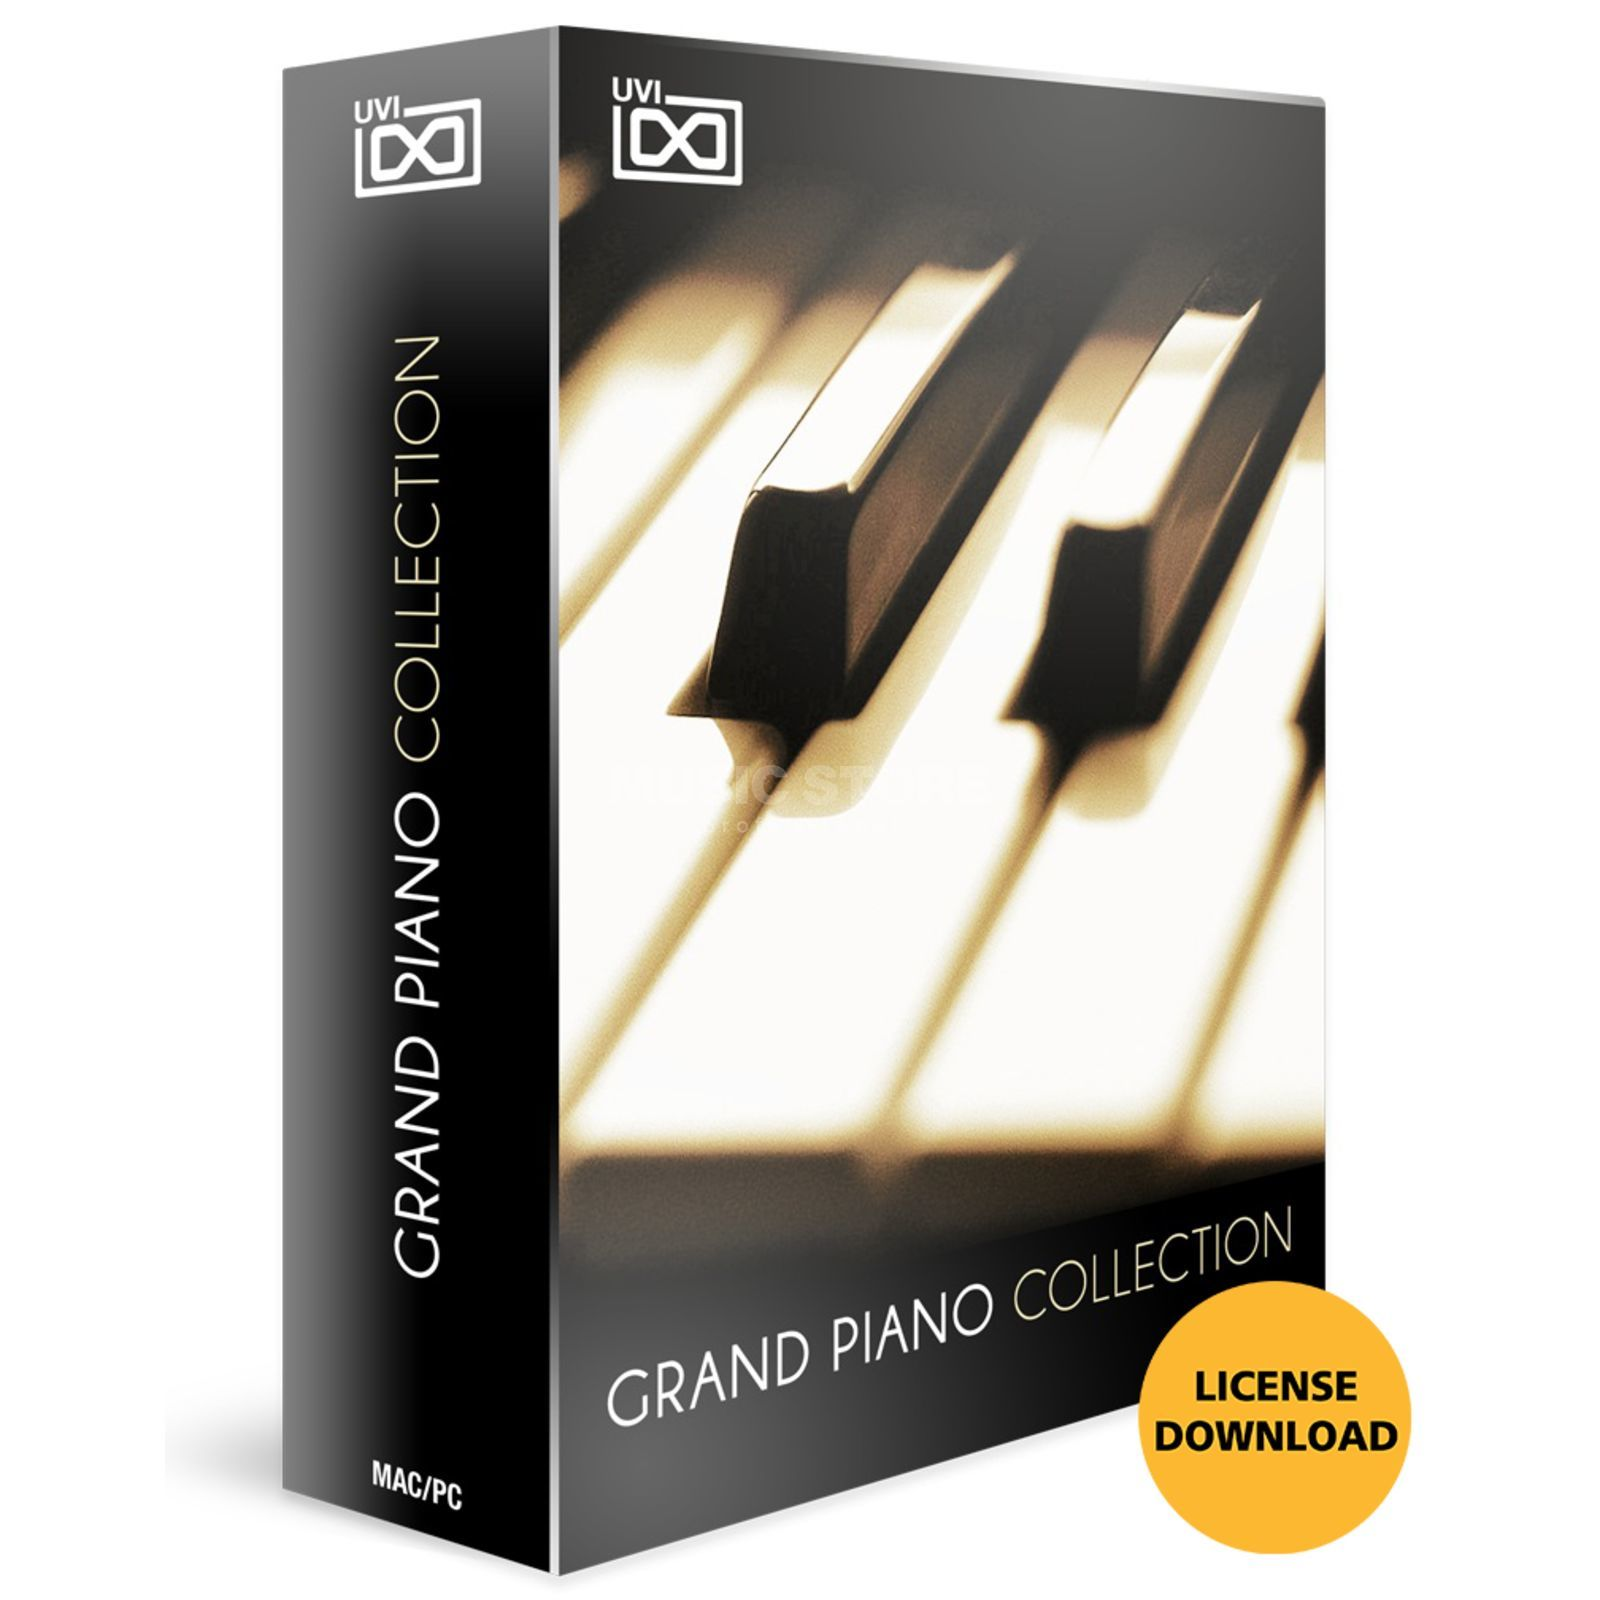 UVI Grand Piano Collection Box Produktbild